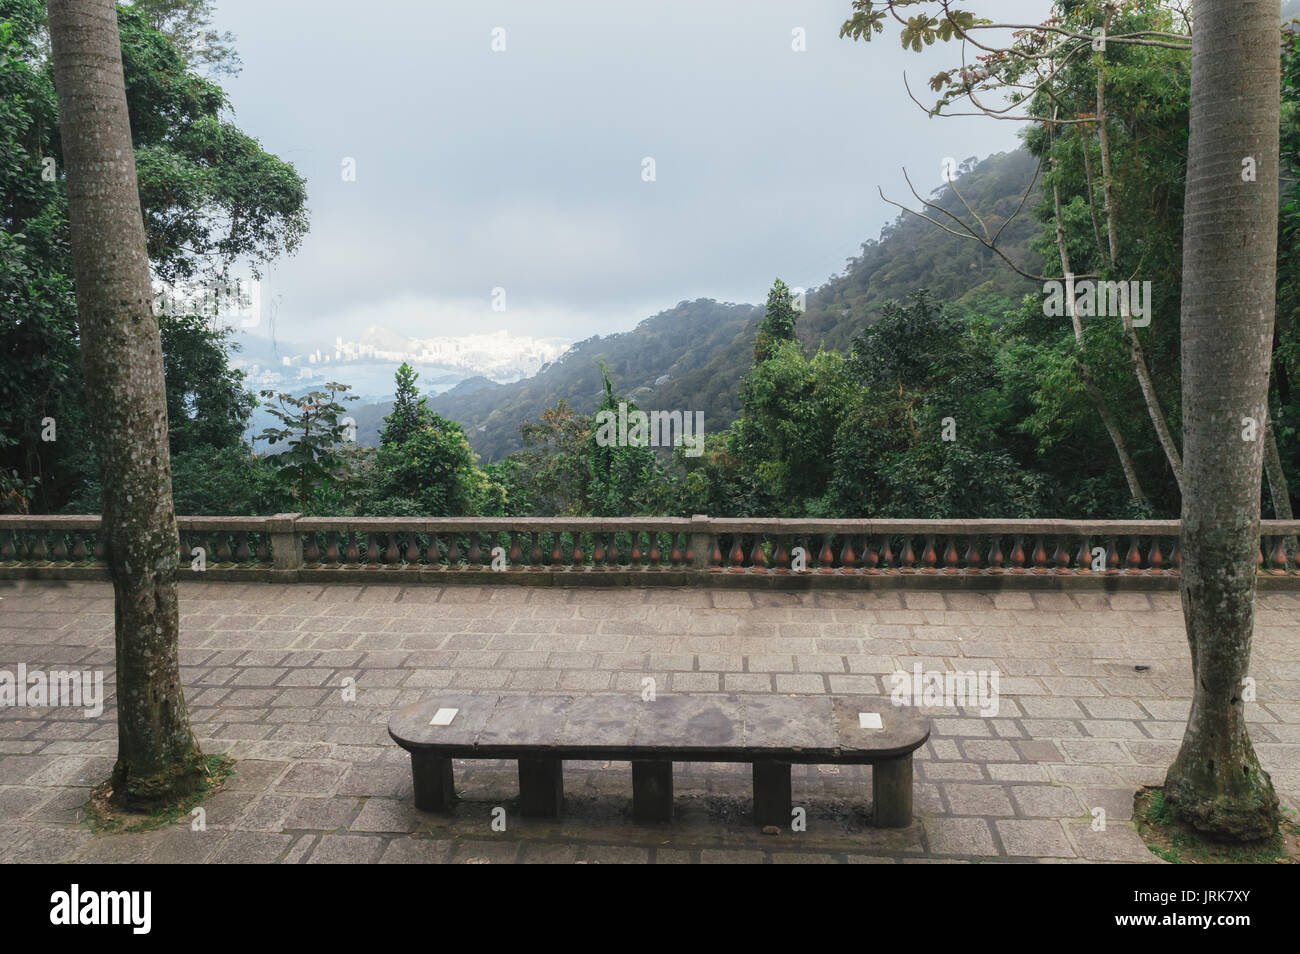 "Mesa do Imperador meaning ""Imperial's table"" is an ancient table overlooking Rio de Janeiro Stock Photo"